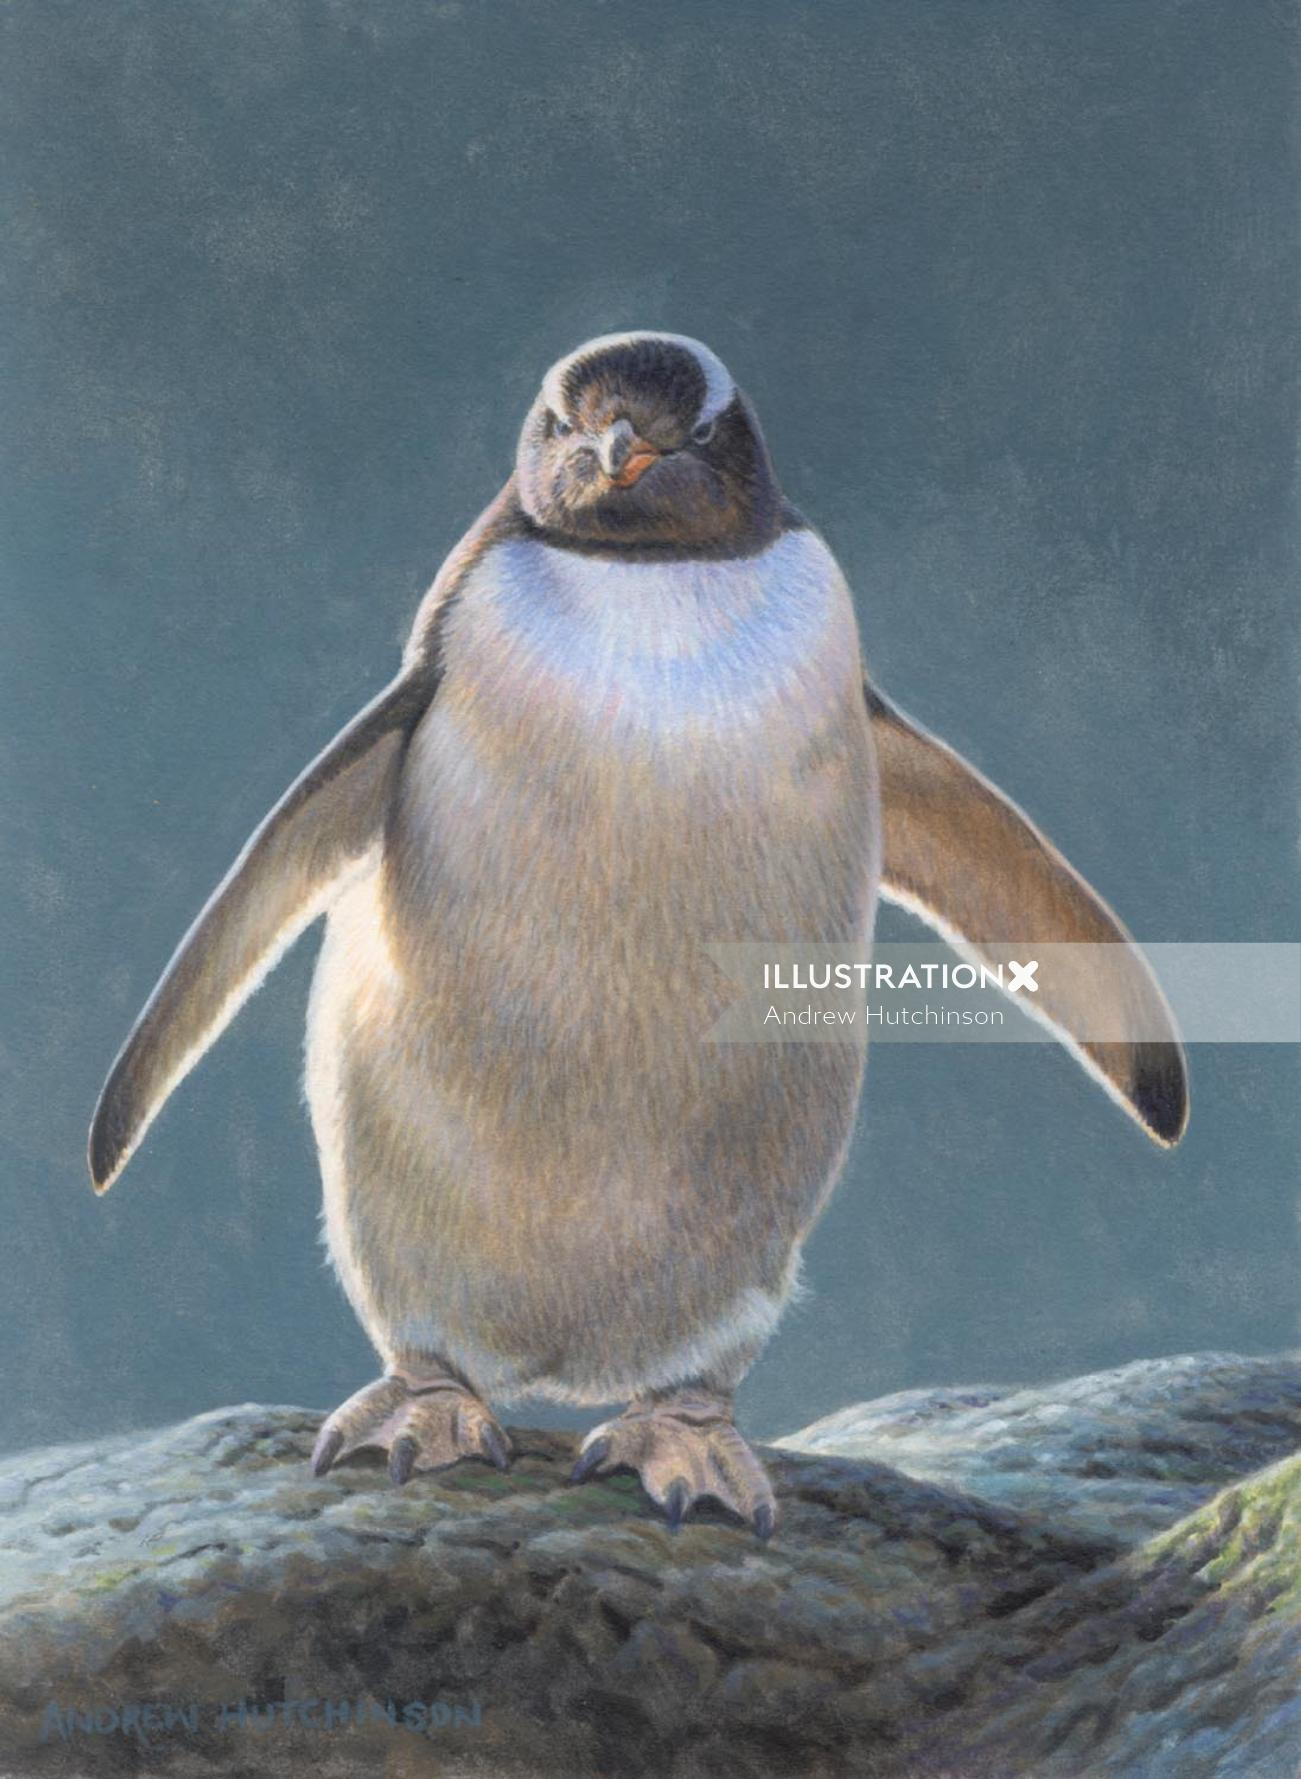 Illustration of gentoo penguin © Andrew Hutchinson